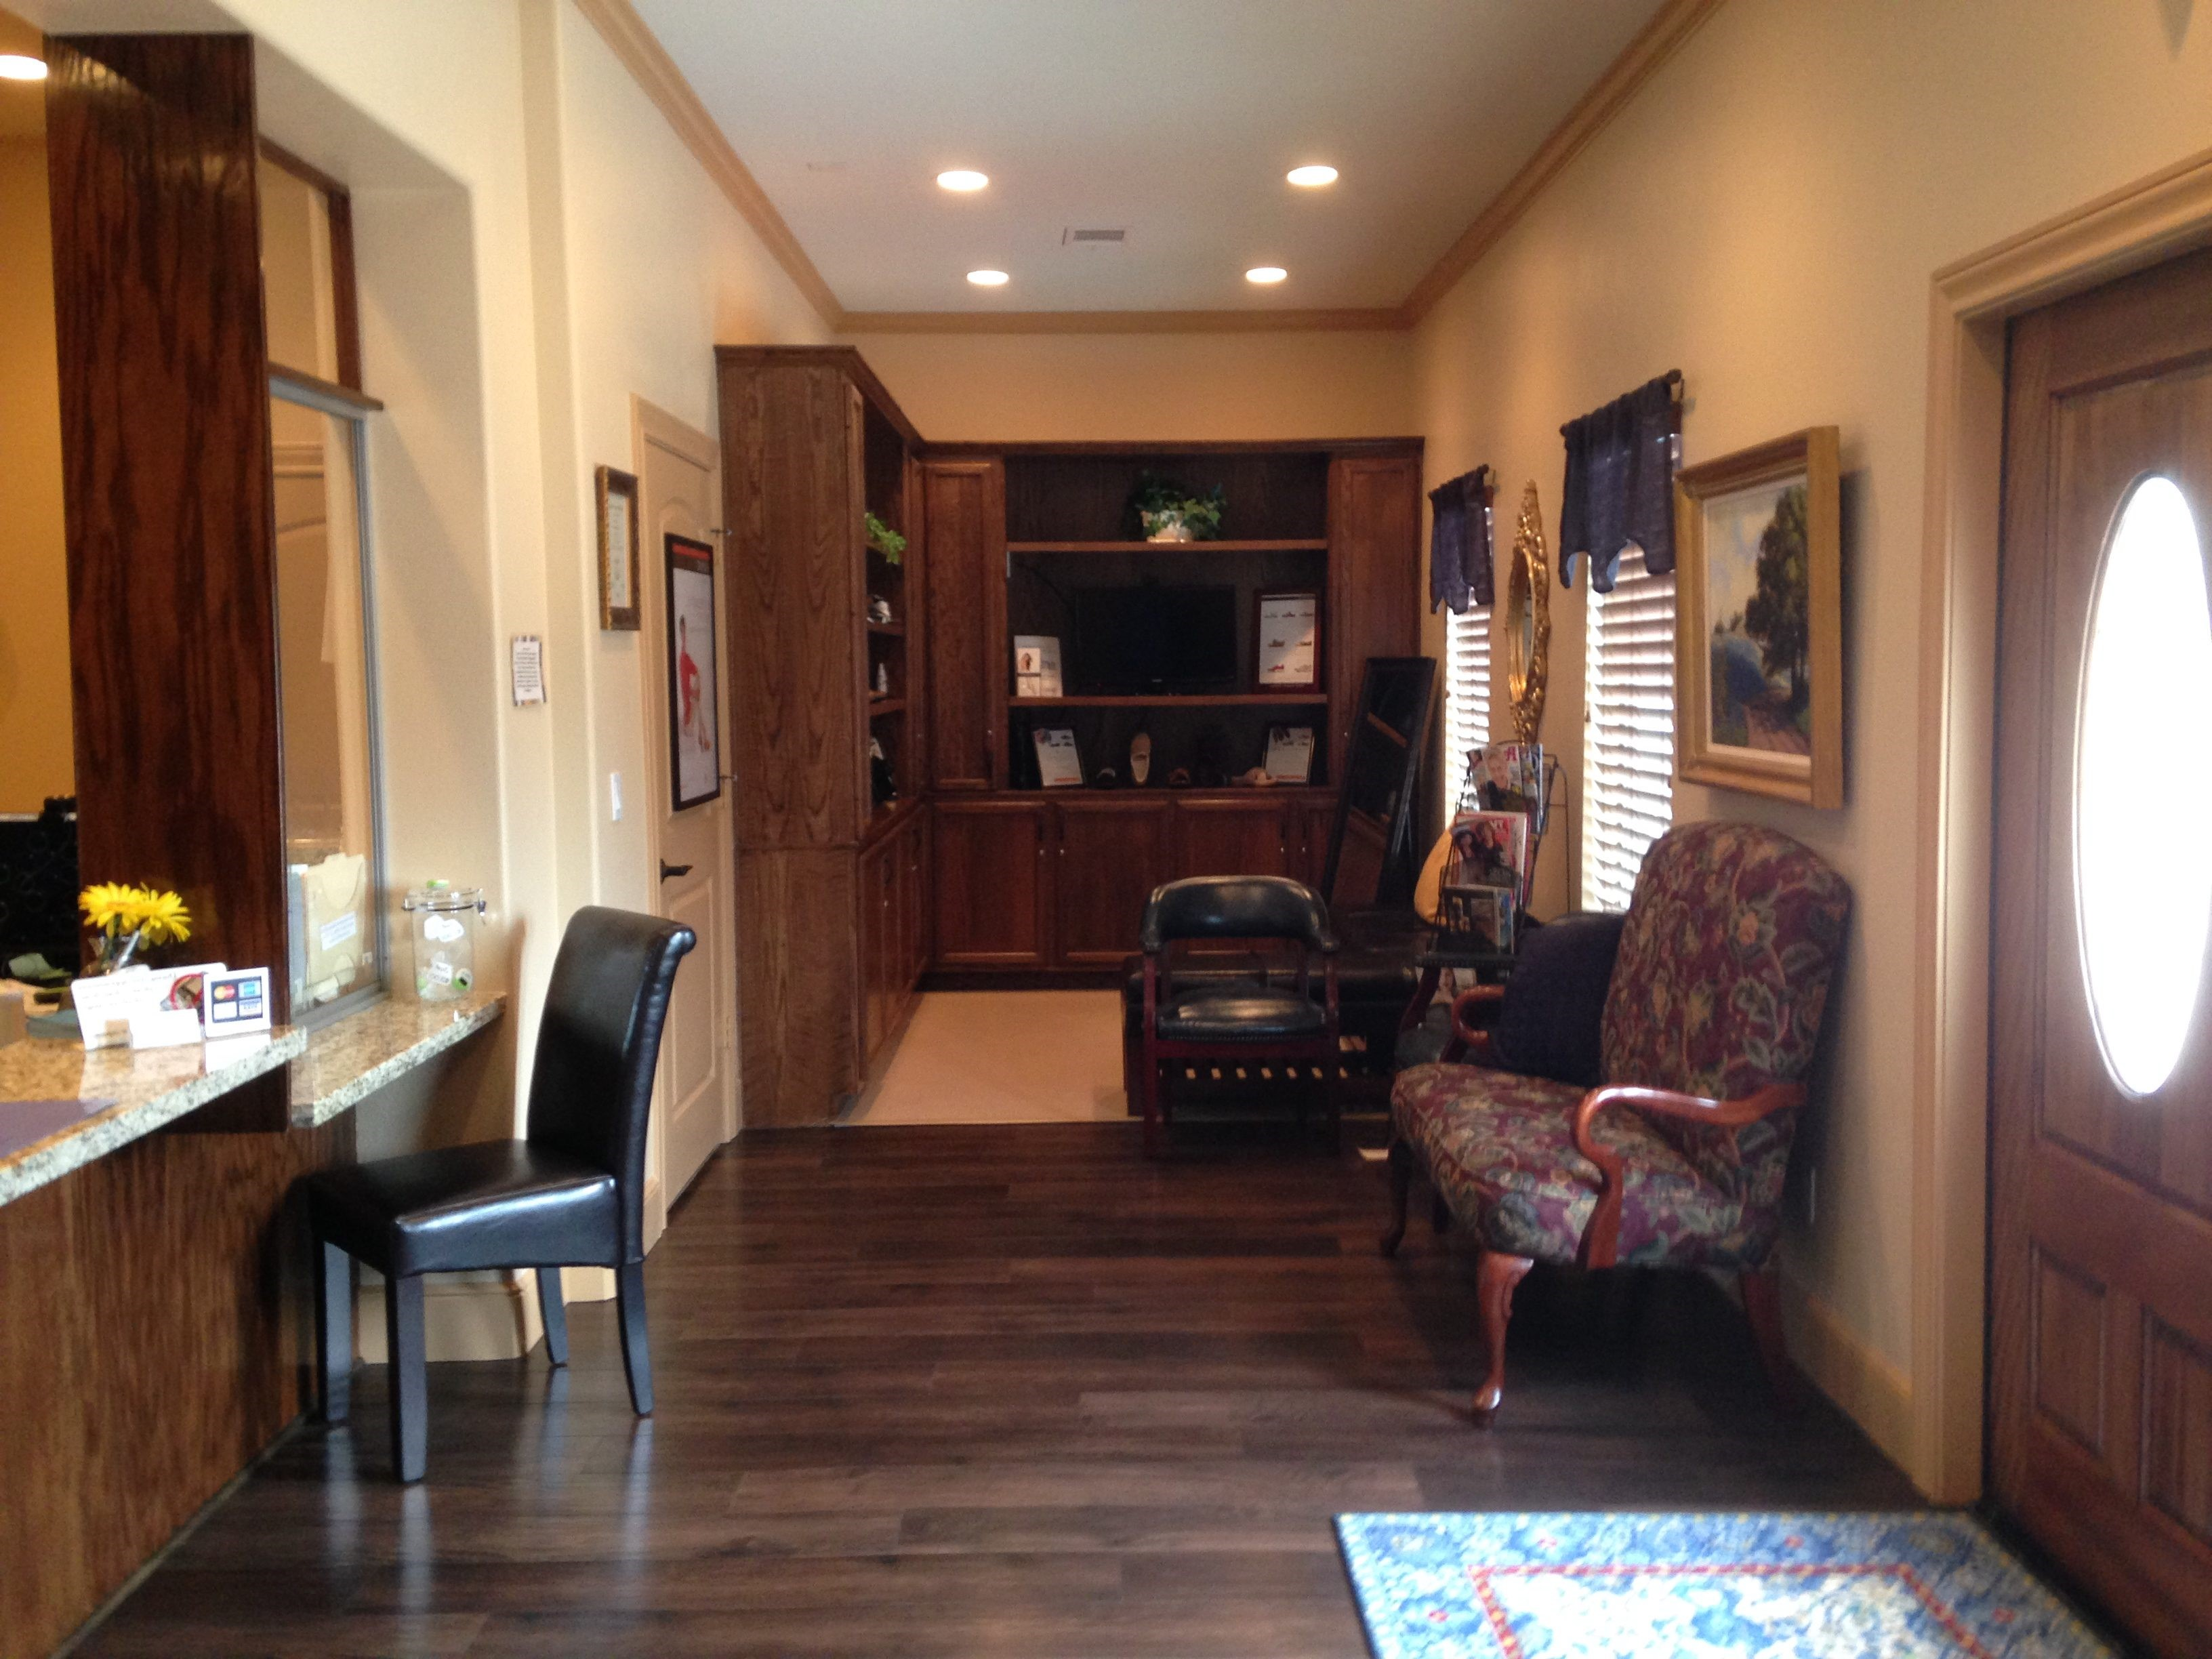 Katy foot podiatrist office interior